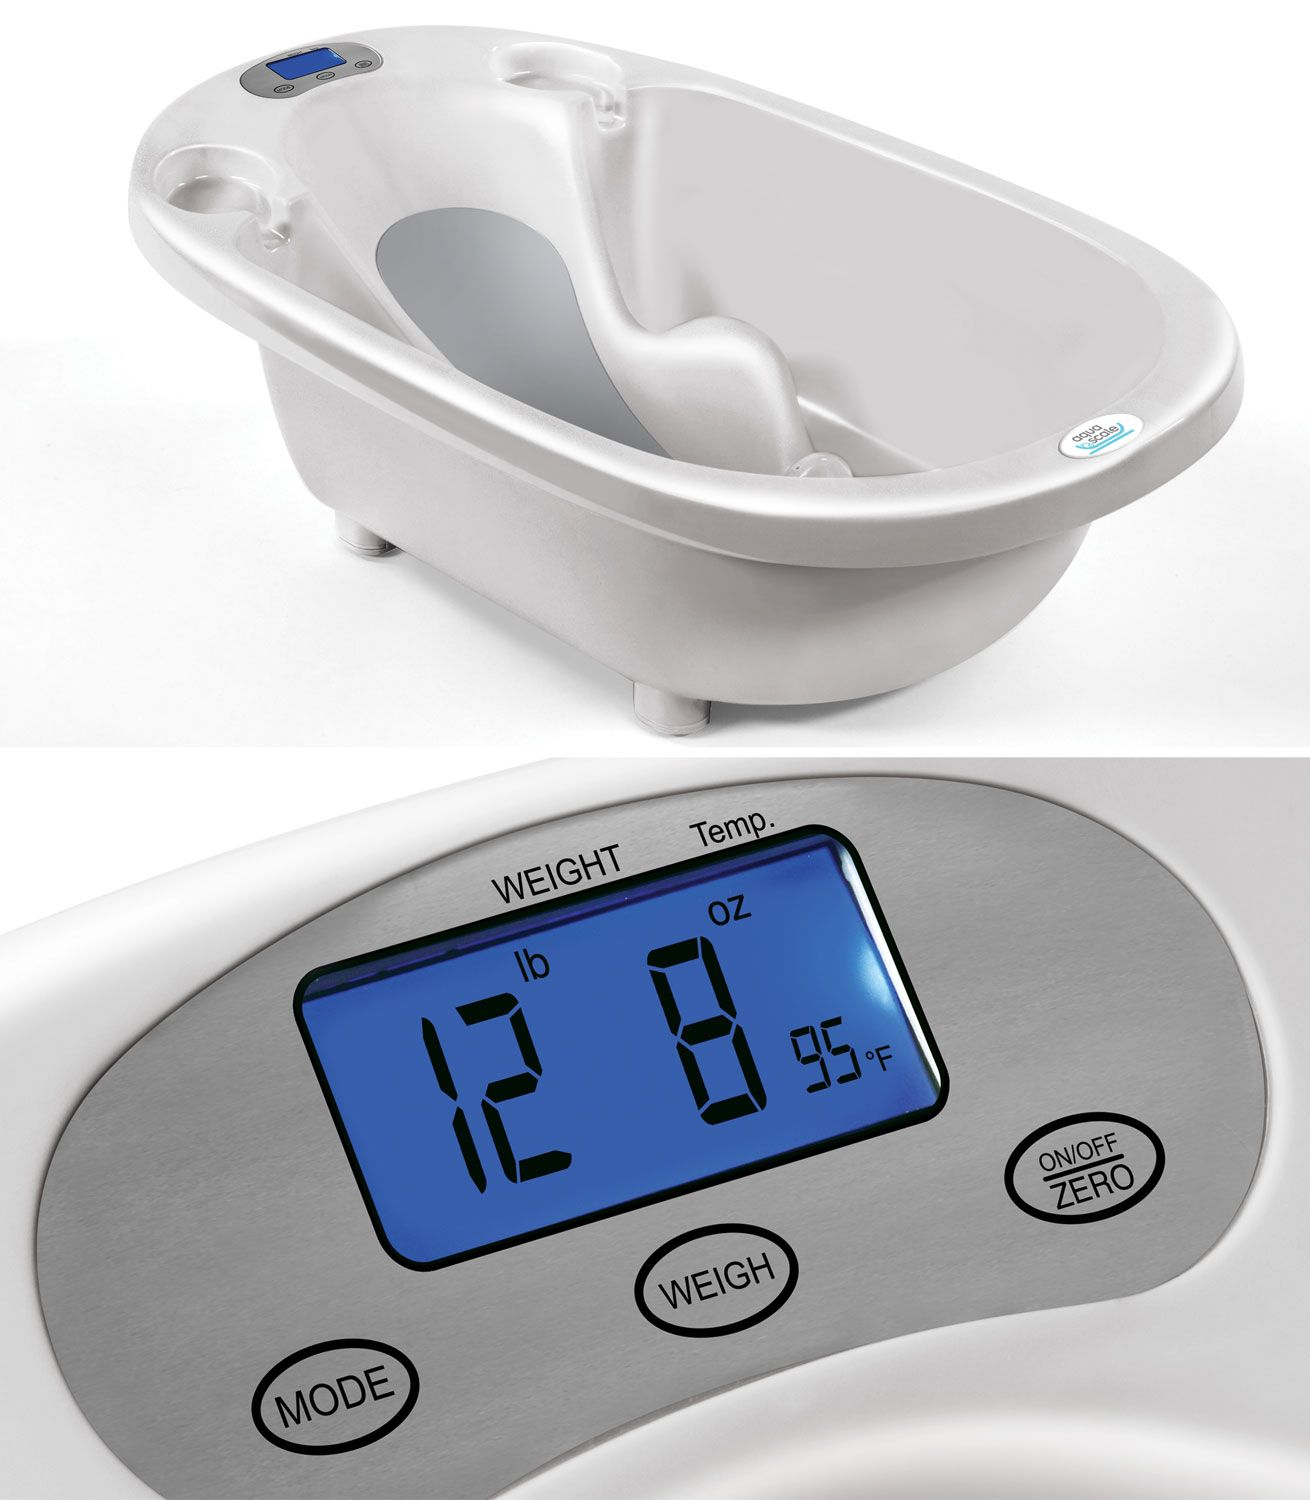 Baby bath with temp and weight built in | Stuff for when I have a ...